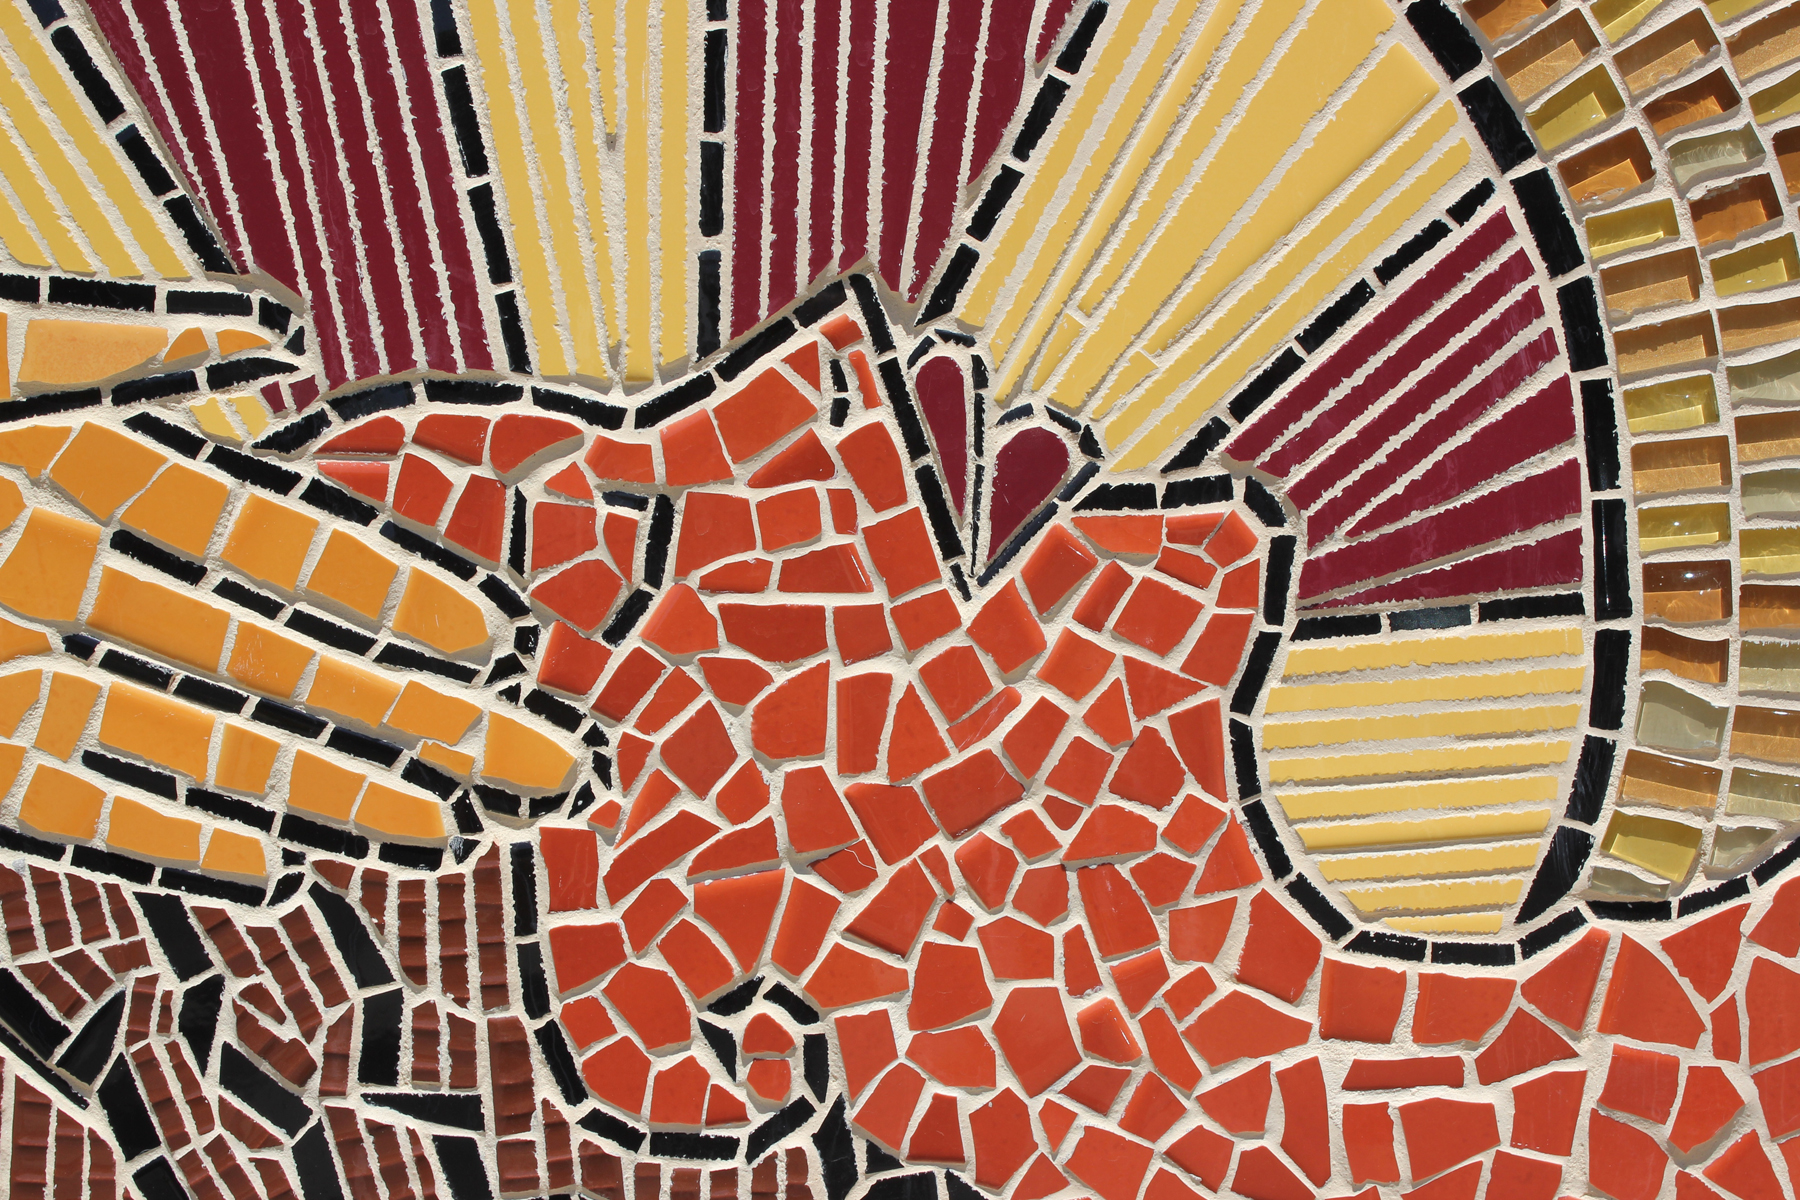 [Image description: A close-up of a mural in earthy browns, reds, and oranges, depicting a woman against a haloed background, with hands massaging her head and her eyes are closed in bliss]